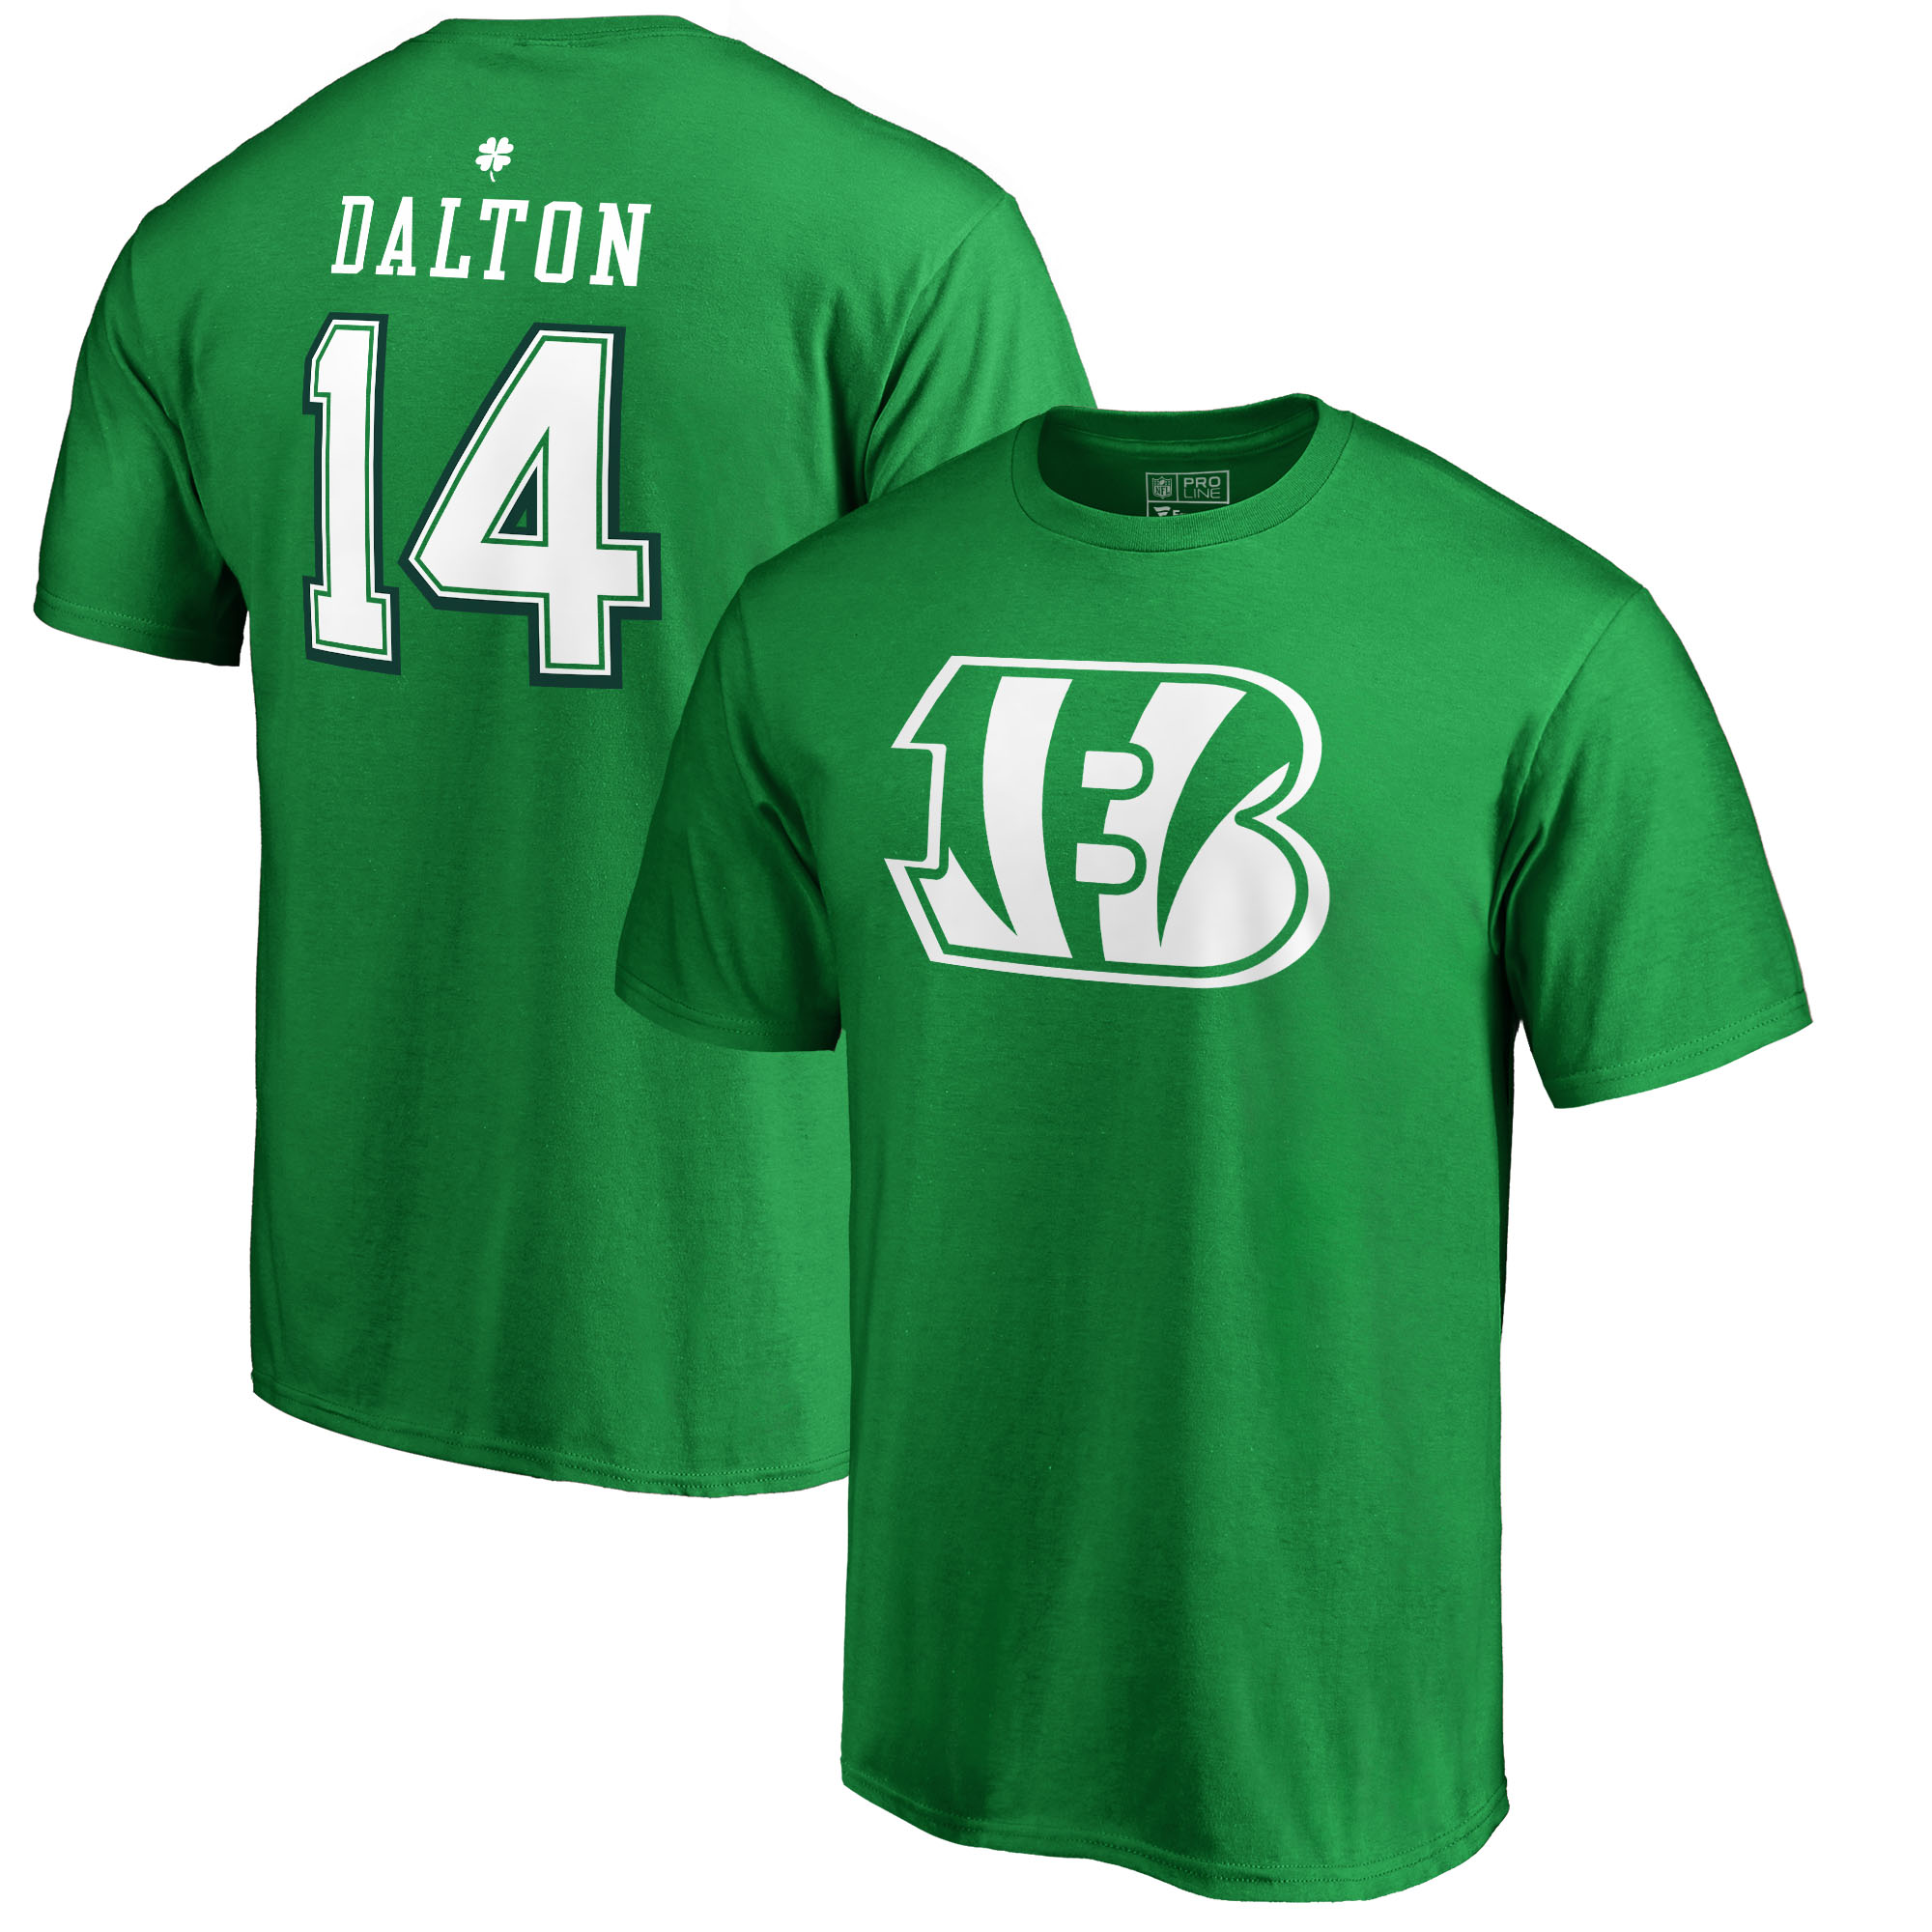 Andy Dalton Cincinnati Bengals NFL Pro Line by Fanatics Branded St. Patrick's Day Icon Name & Number T-Shirt - Kelly Green